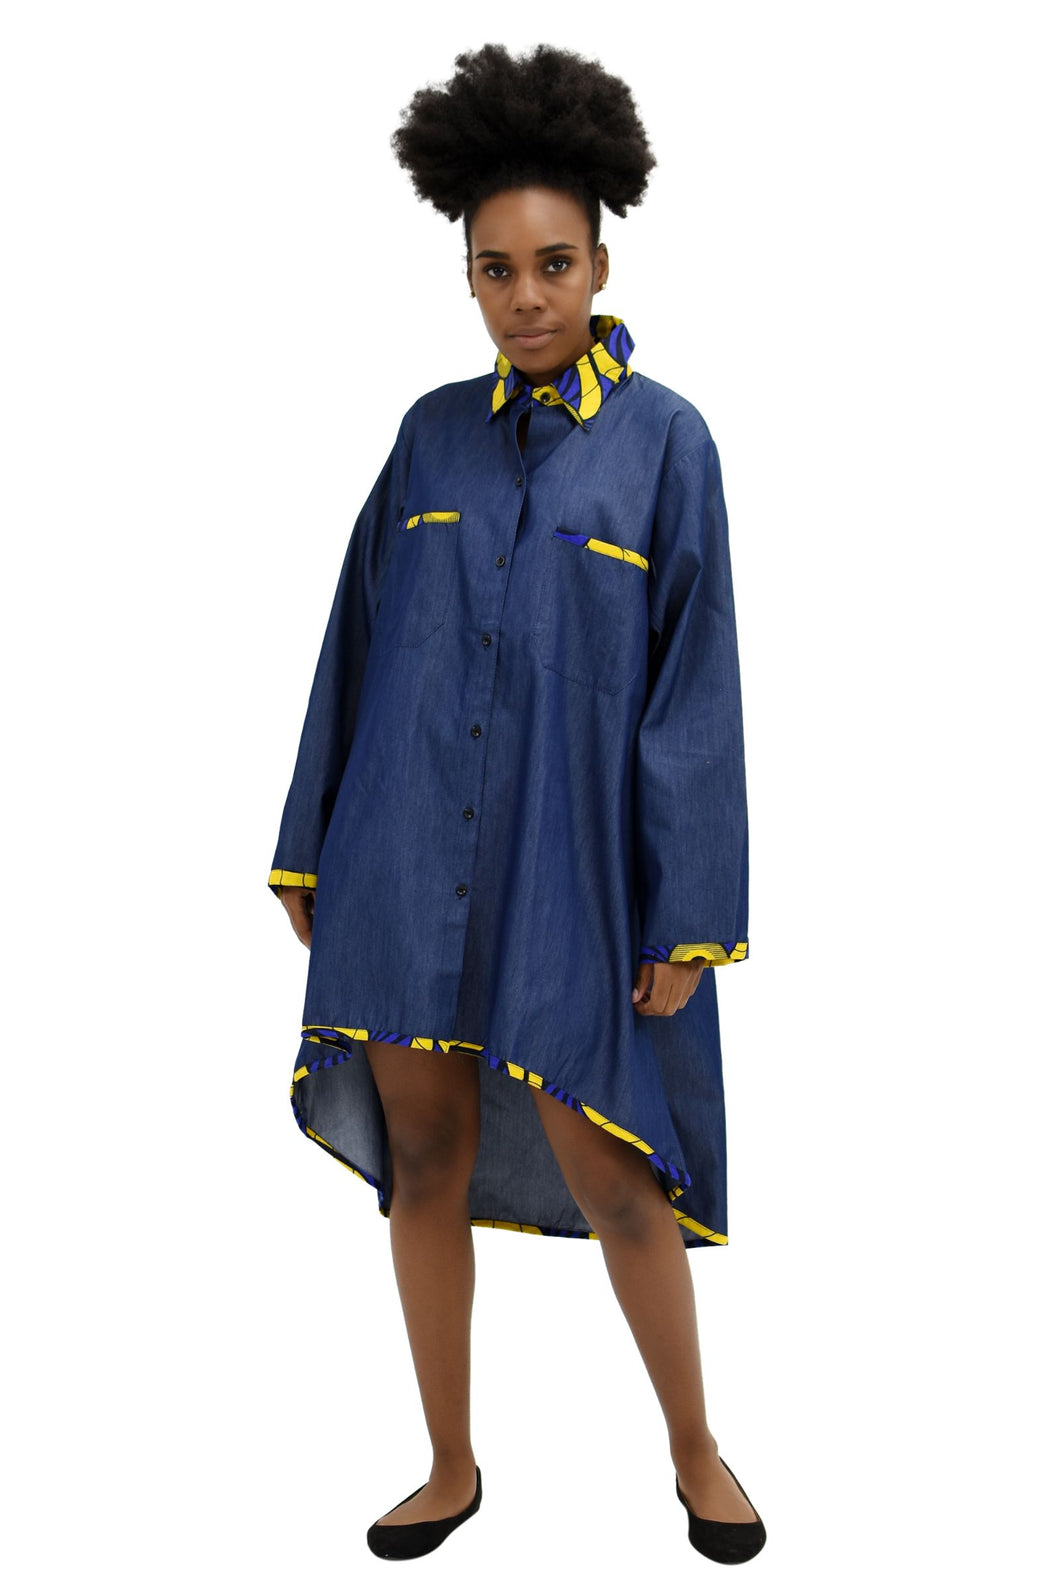 Denim/Ankara Over Sized Shirt / Dress 2199-417